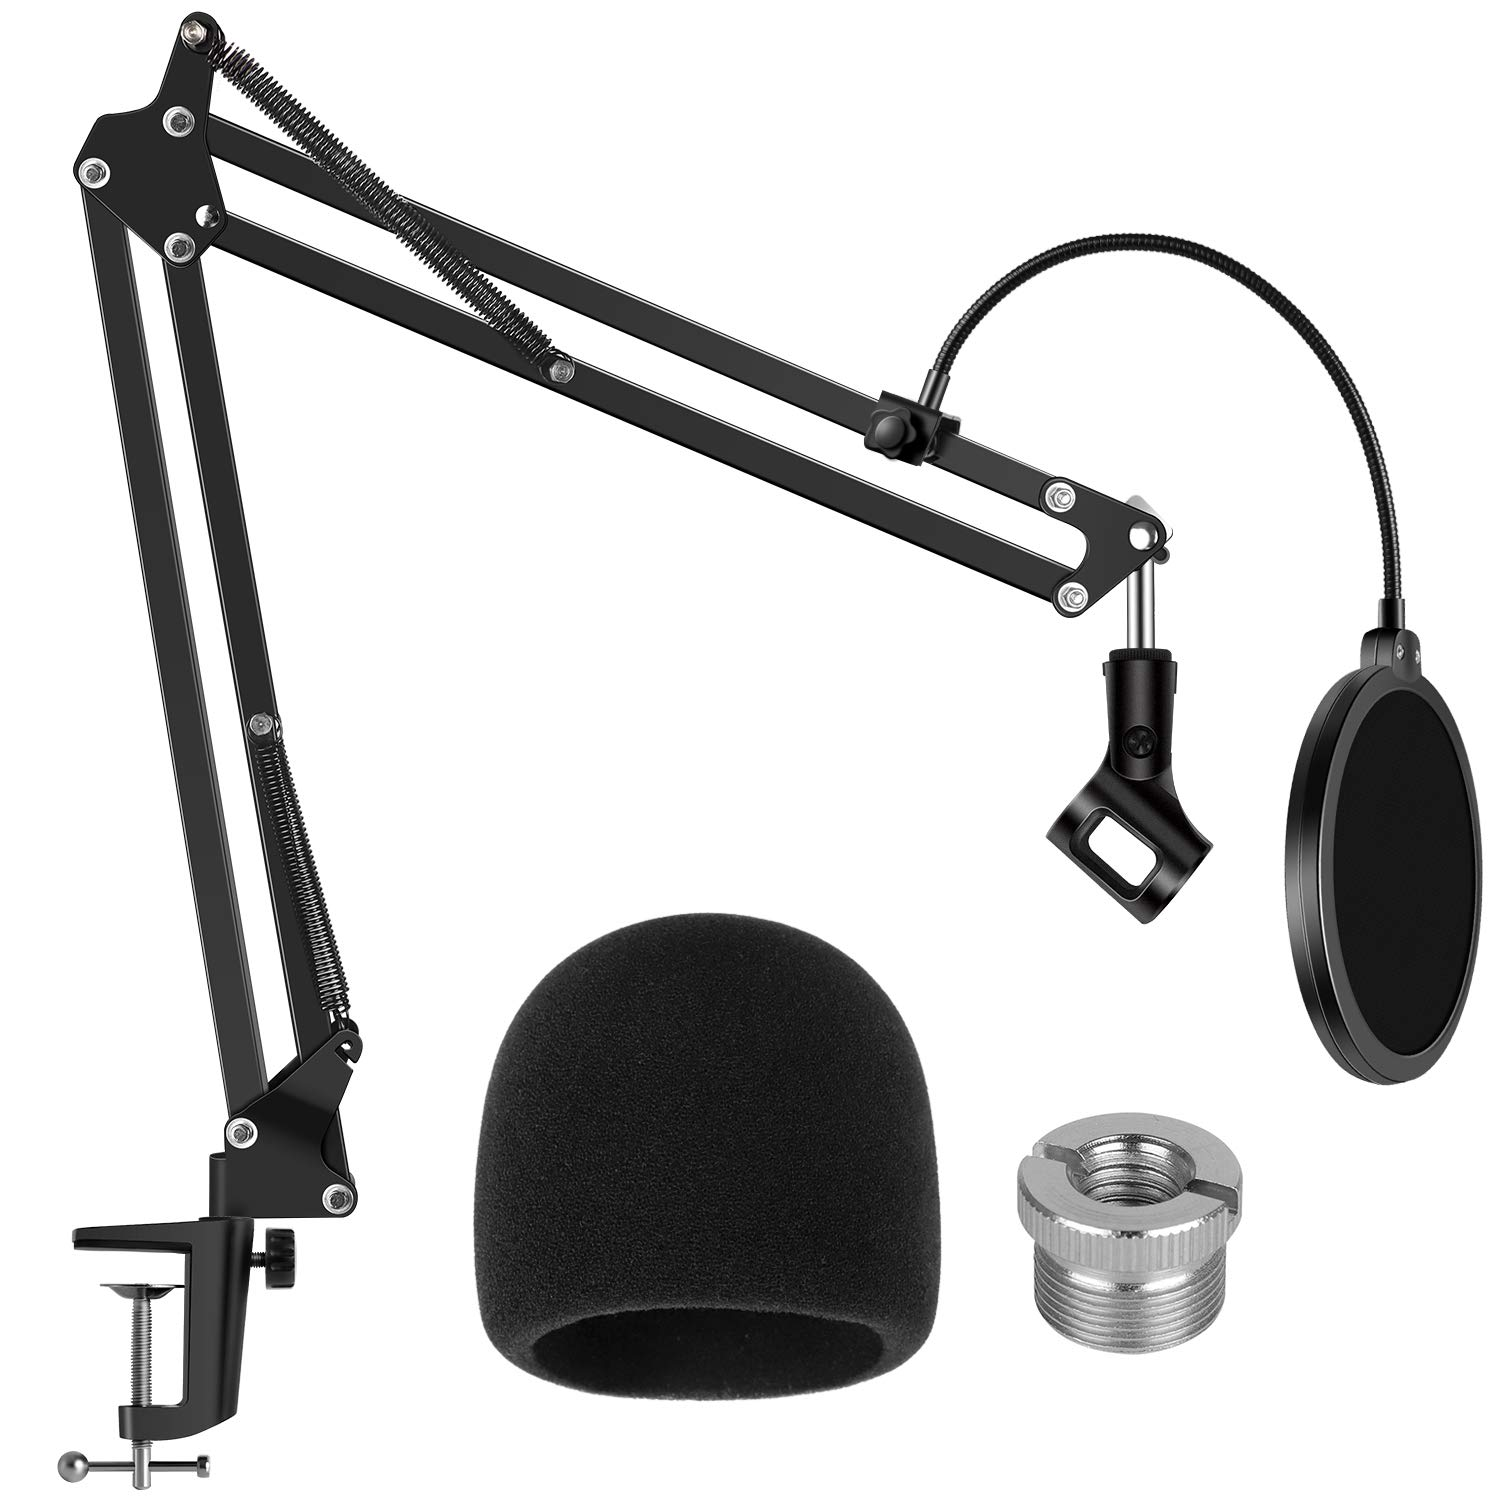 InnoGear Mic Stand for Blue Yeti, Heavy Duty Microphone Stand with Microphone Windscreen and Dual Layered Mic Pop Filter Suspension Boom Scissor Arm Stands for Blue Spark and Other Mics